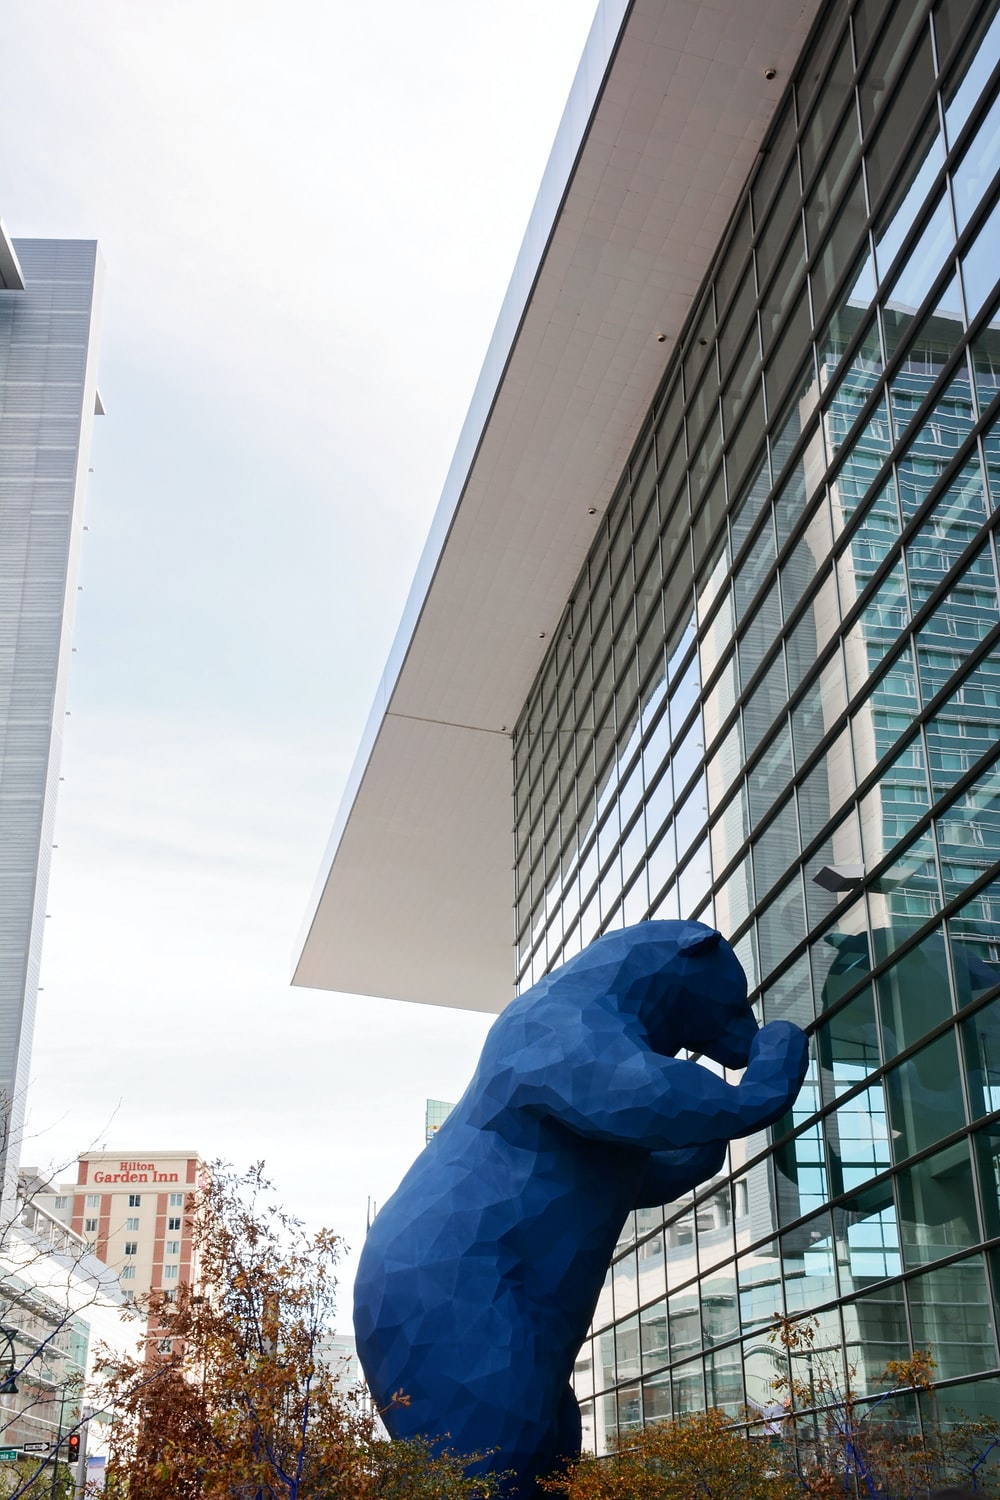 blue bear leaning on glass building